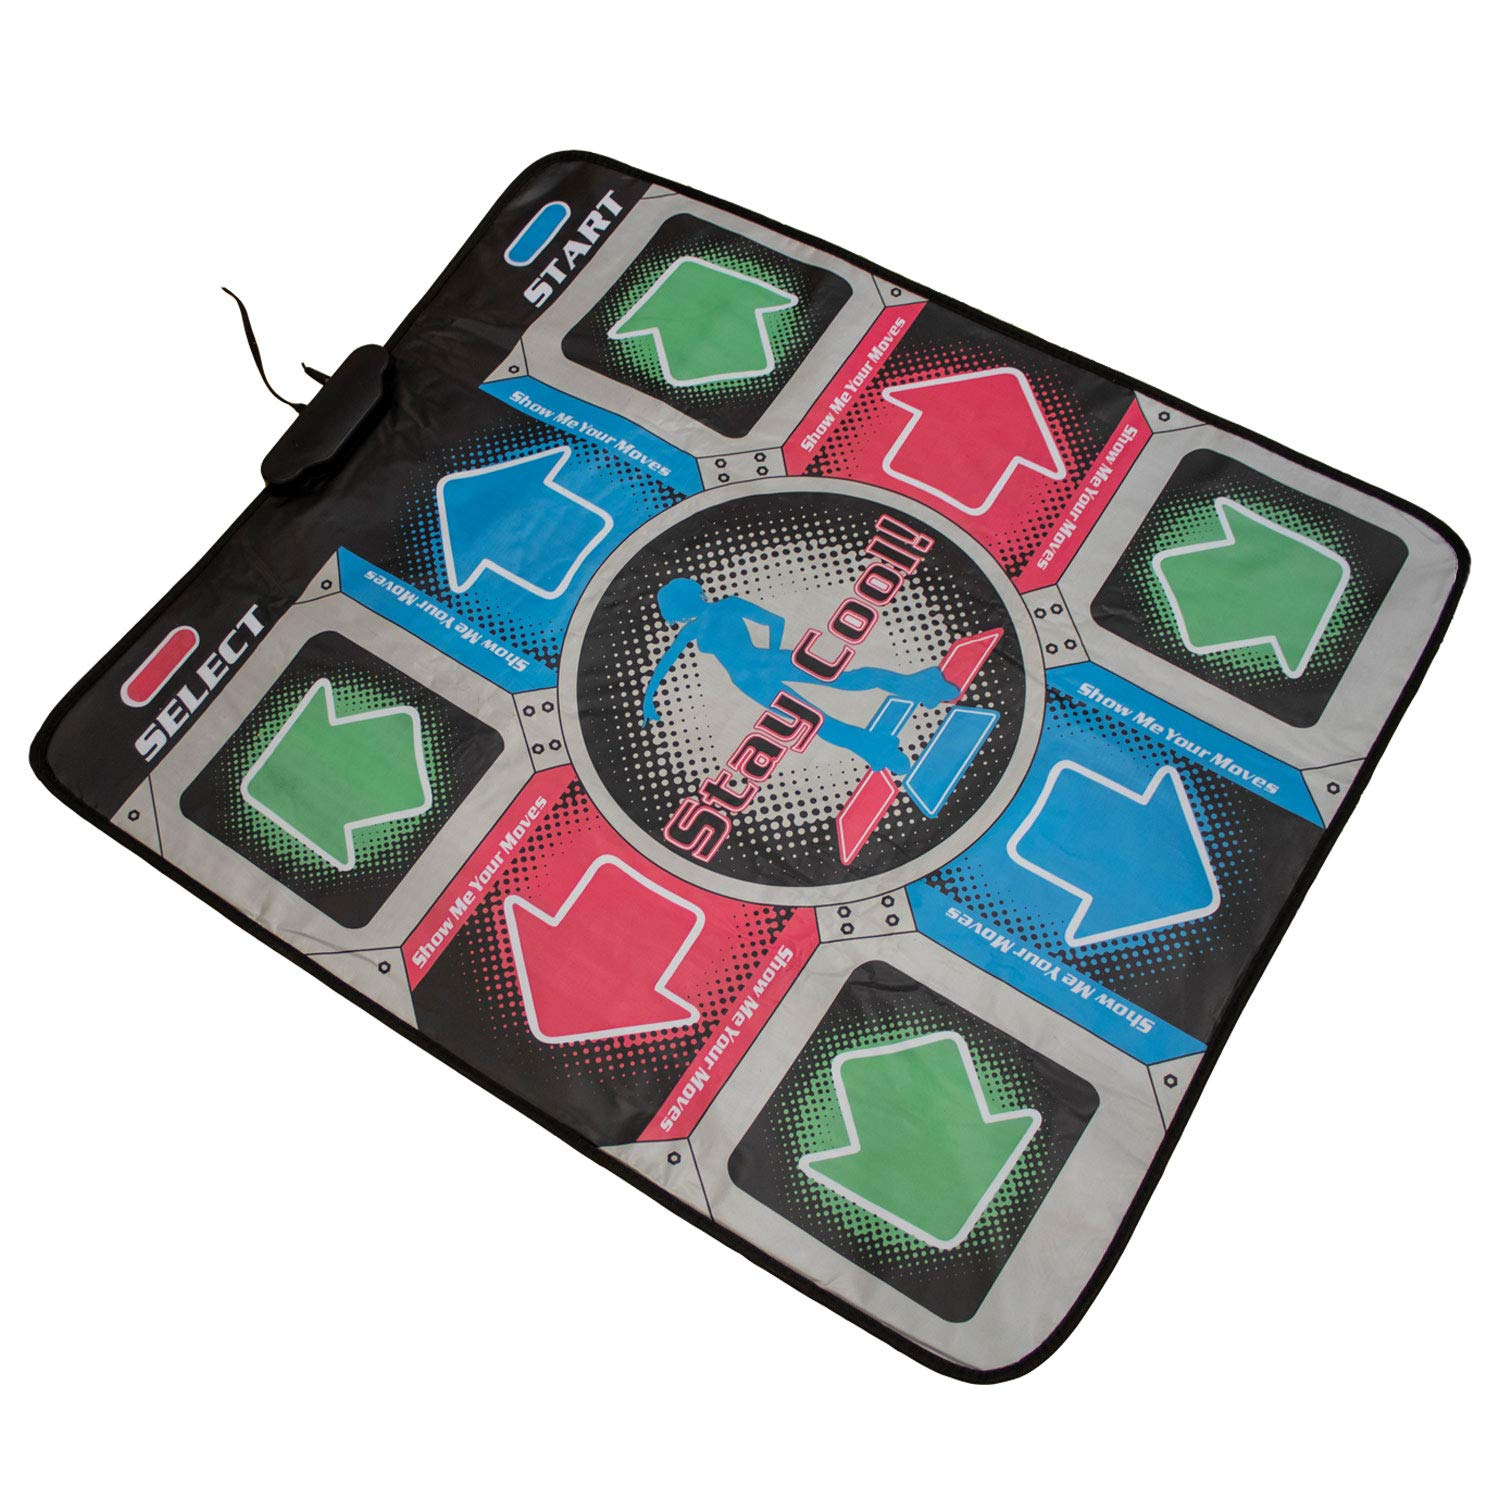 Retro Dance Mat with 110 Built-in Songs